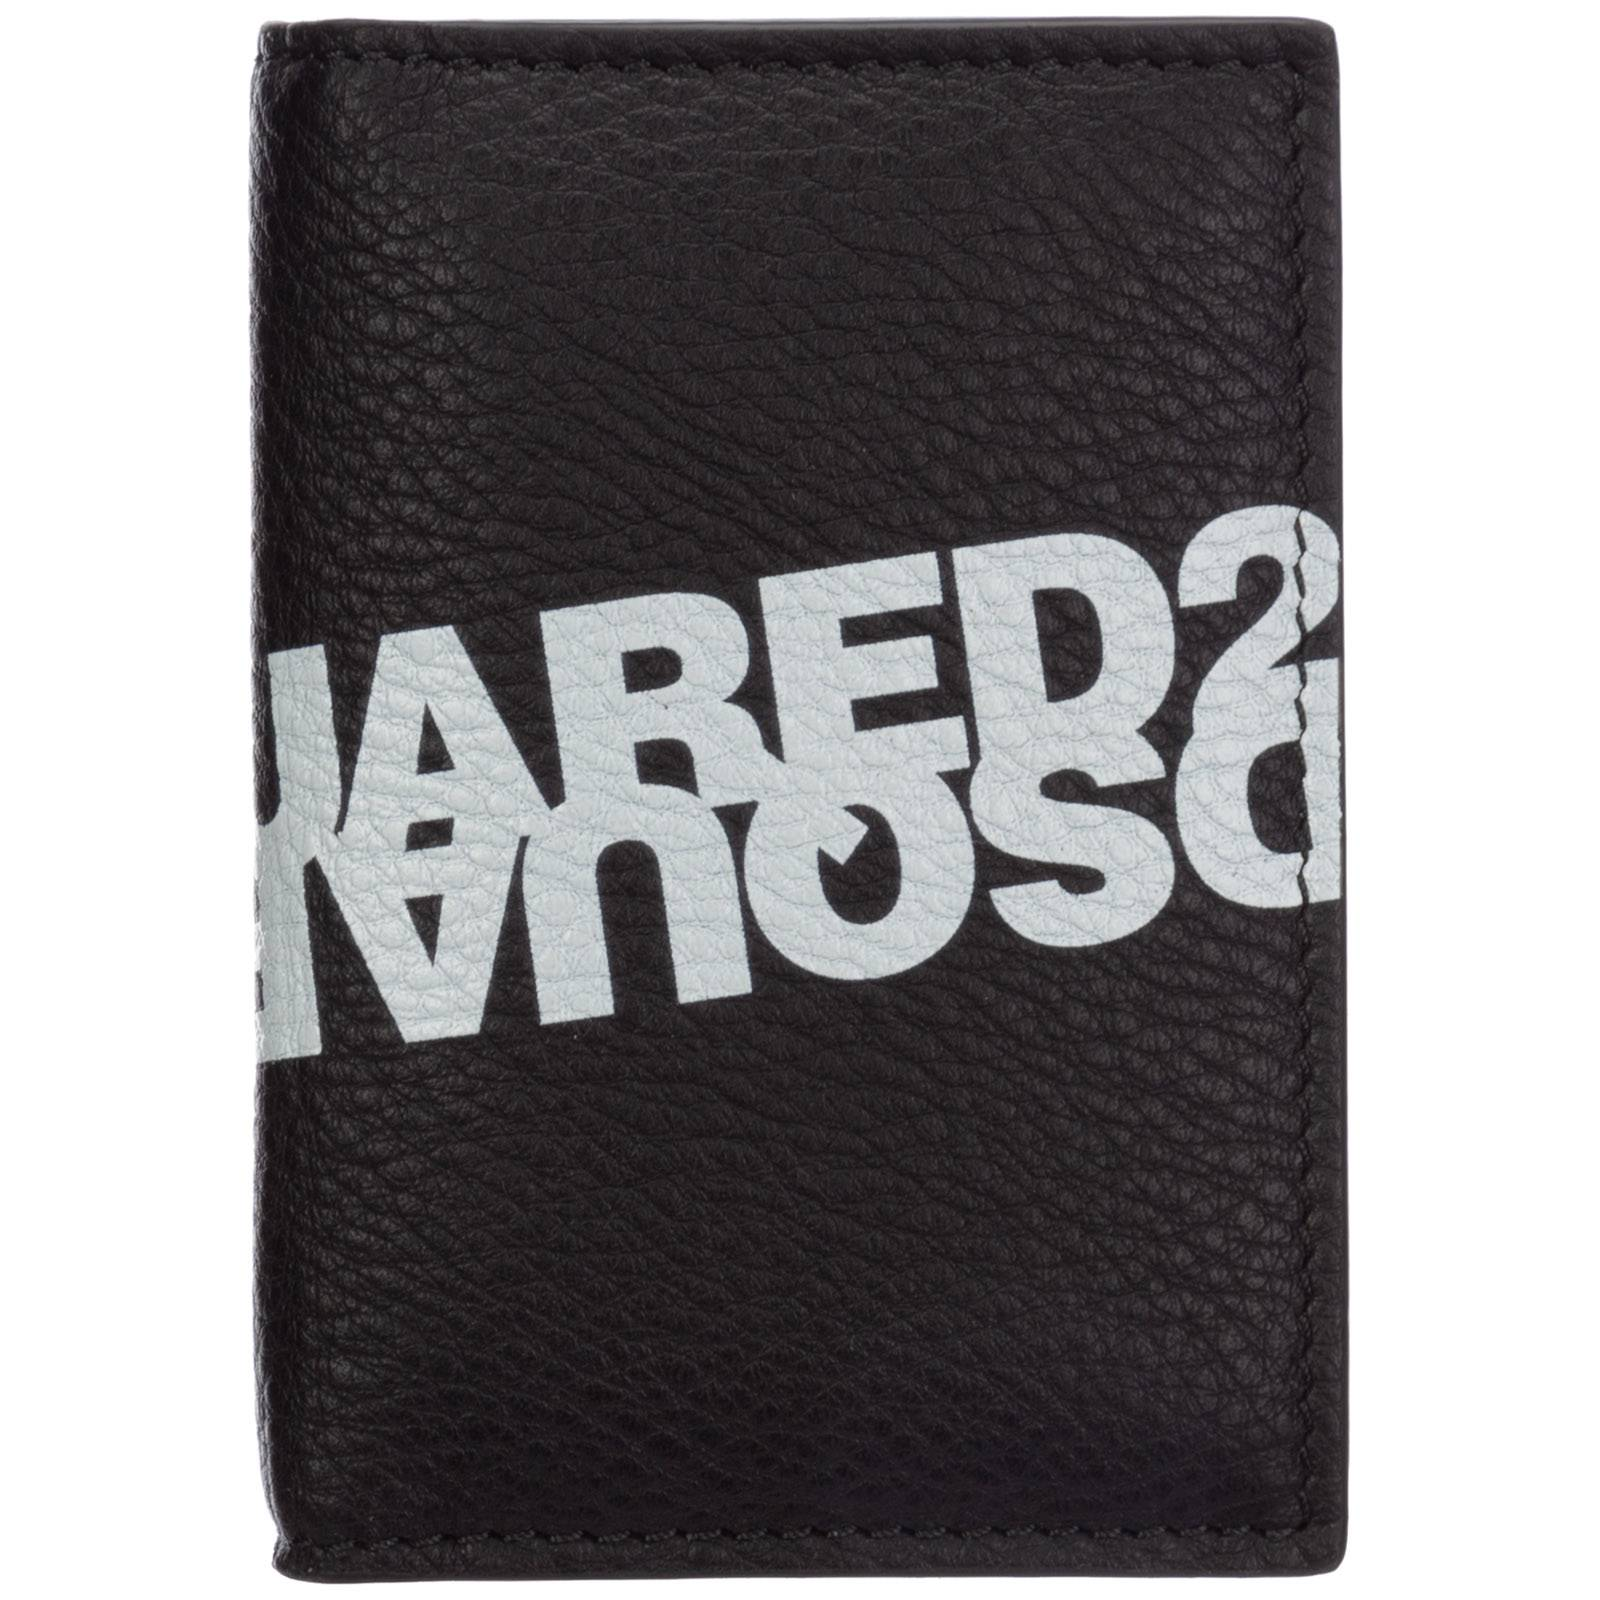 Dsquared2 Men's genuine leather money clip wallet  - Black